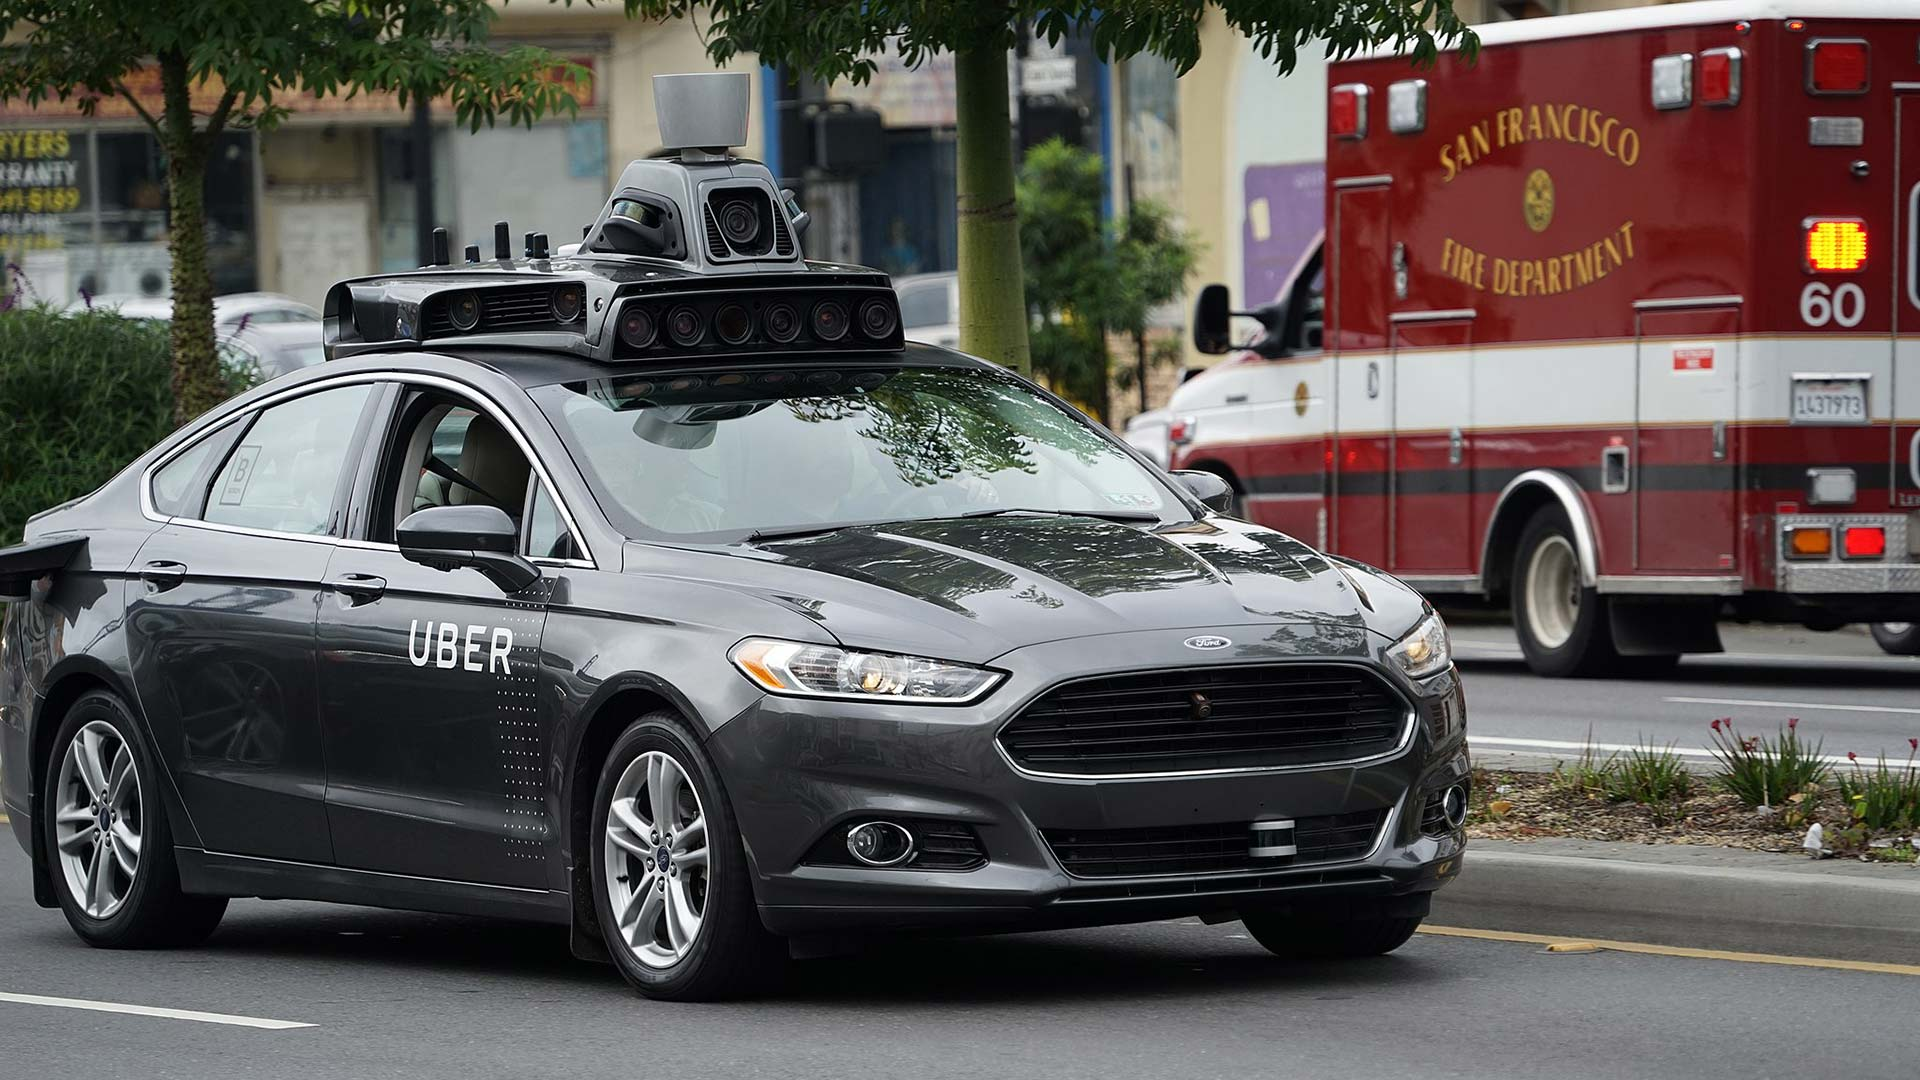 An Uber self-driving vehicle in San Francisco.